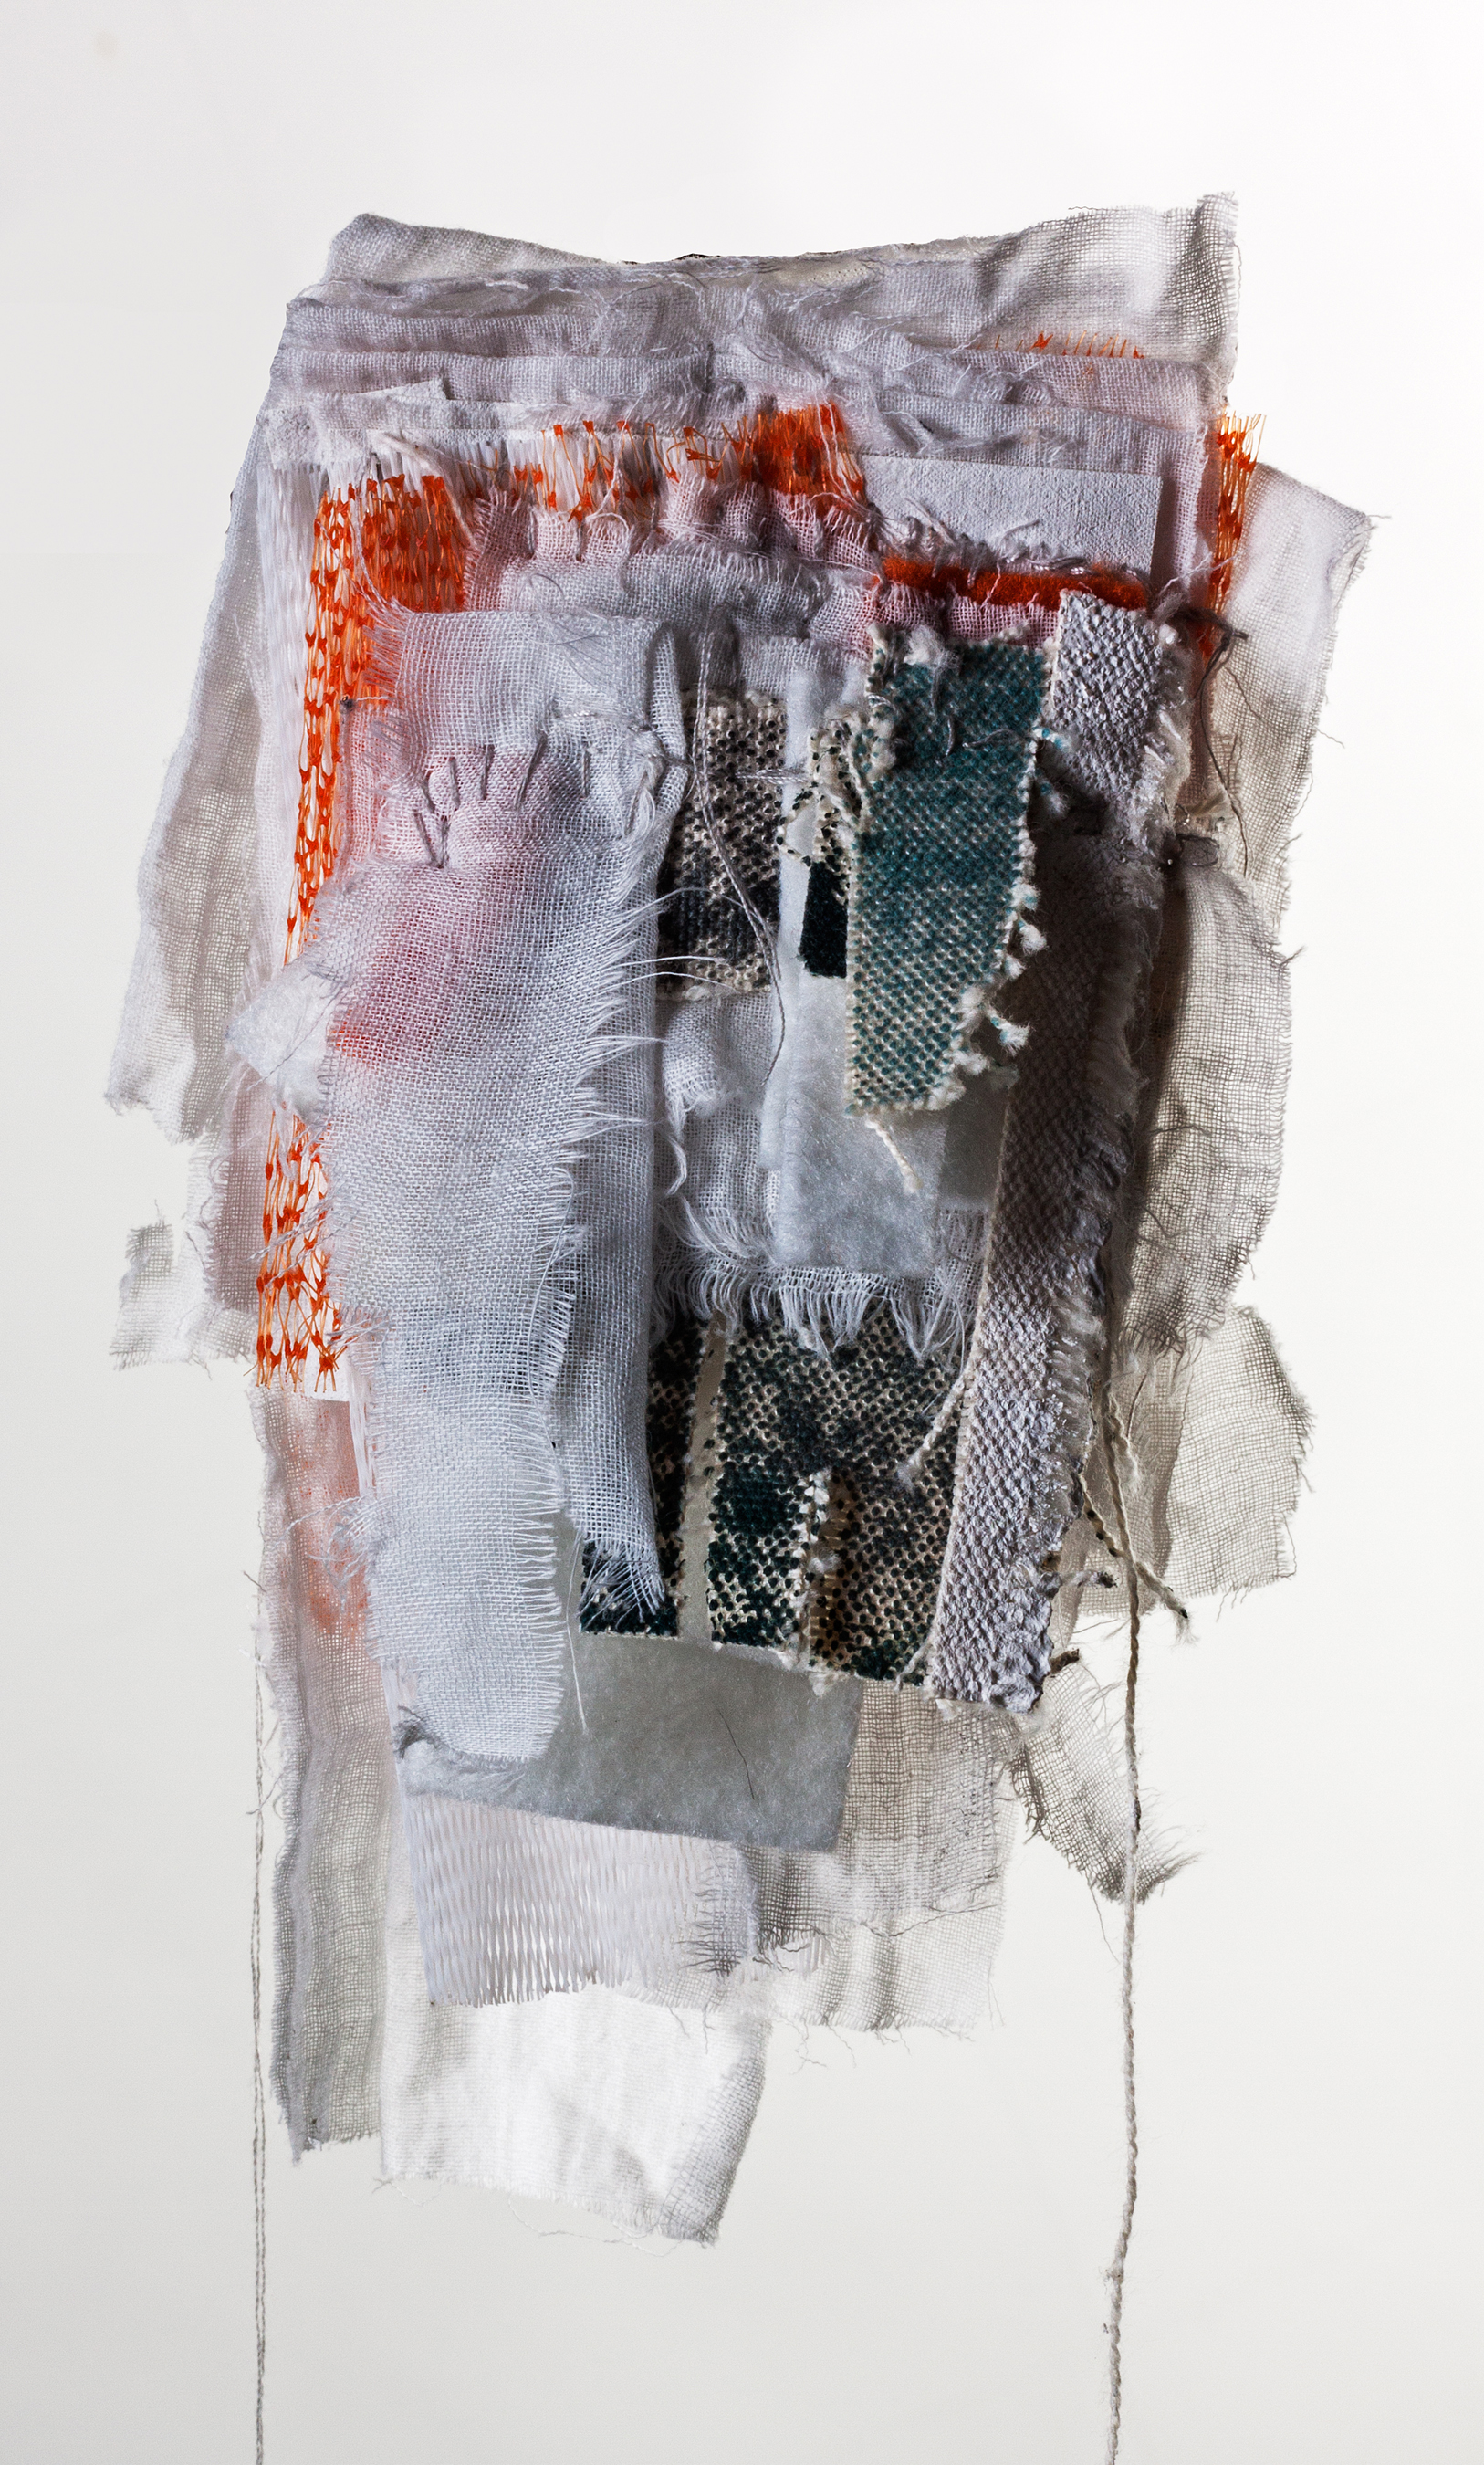 Layered Introversion 2. Plastic netting, recycled clothing, gauze, felt, cotton thread, pins. 22 x 20 cm 2017.jpg